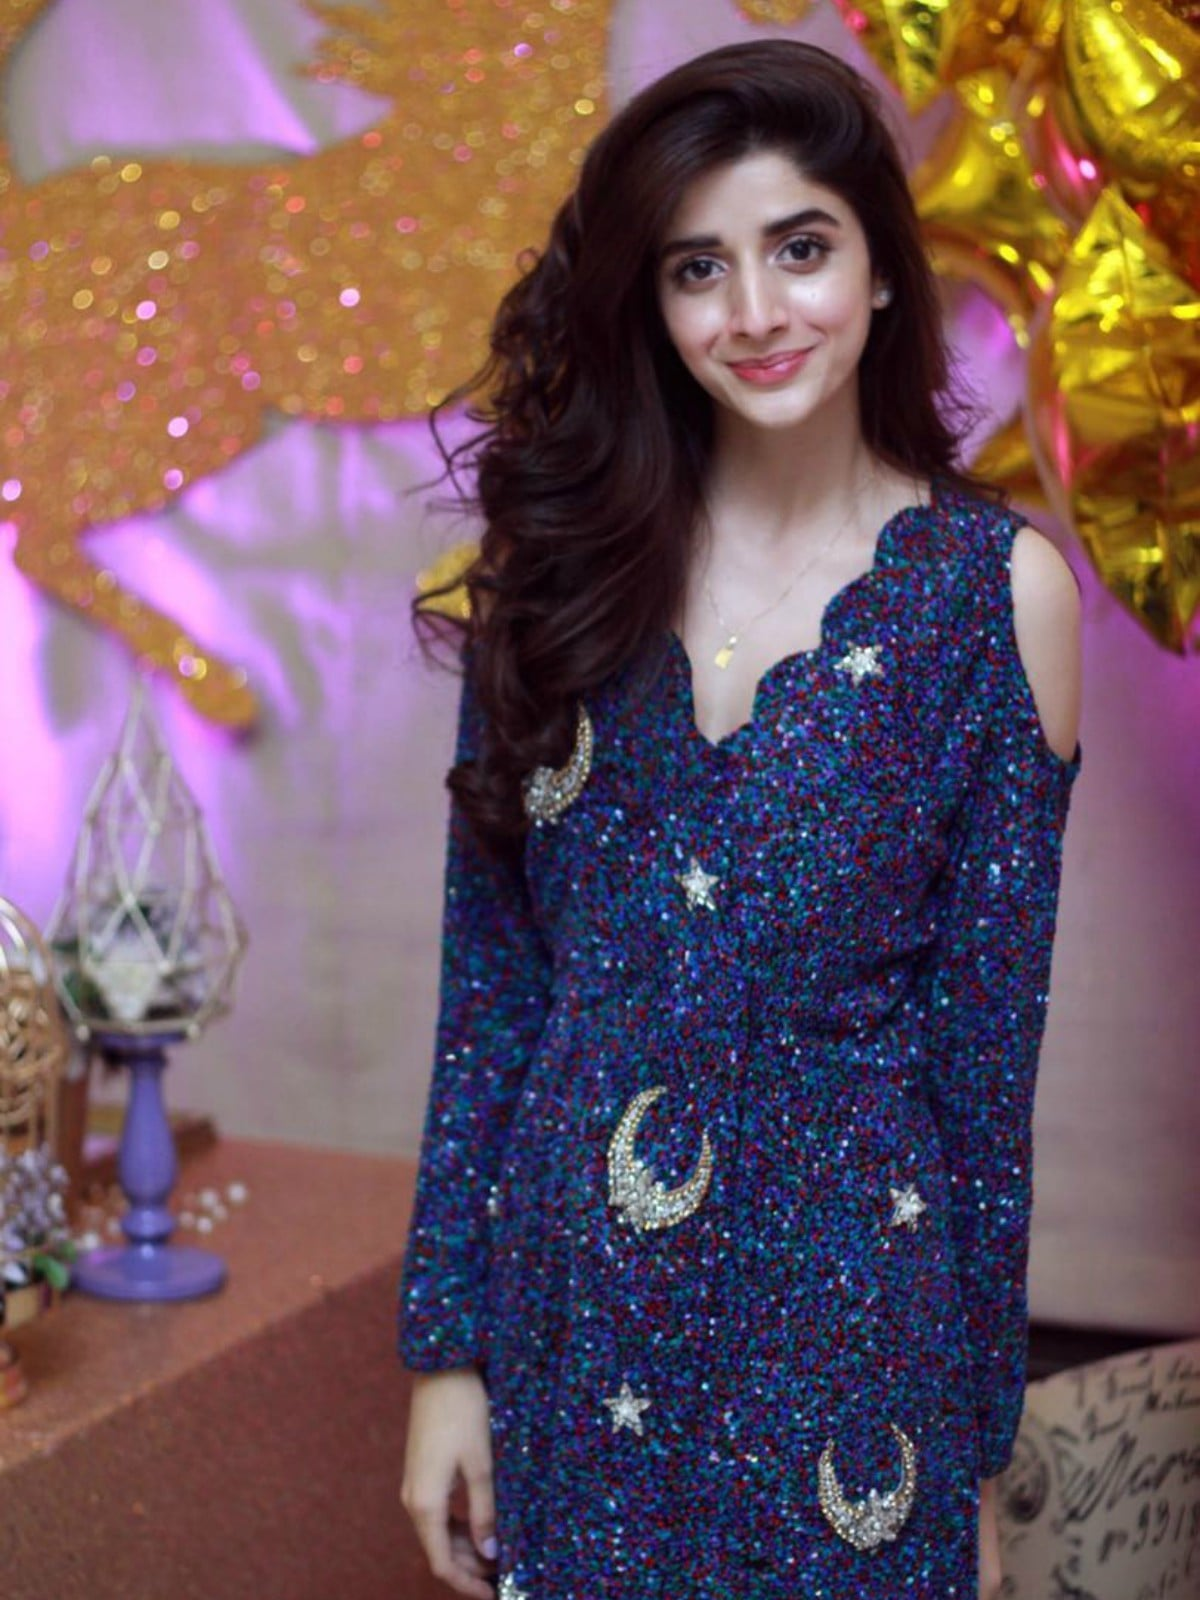 Mawra's night sky-inspired dress is by Amira Haroon